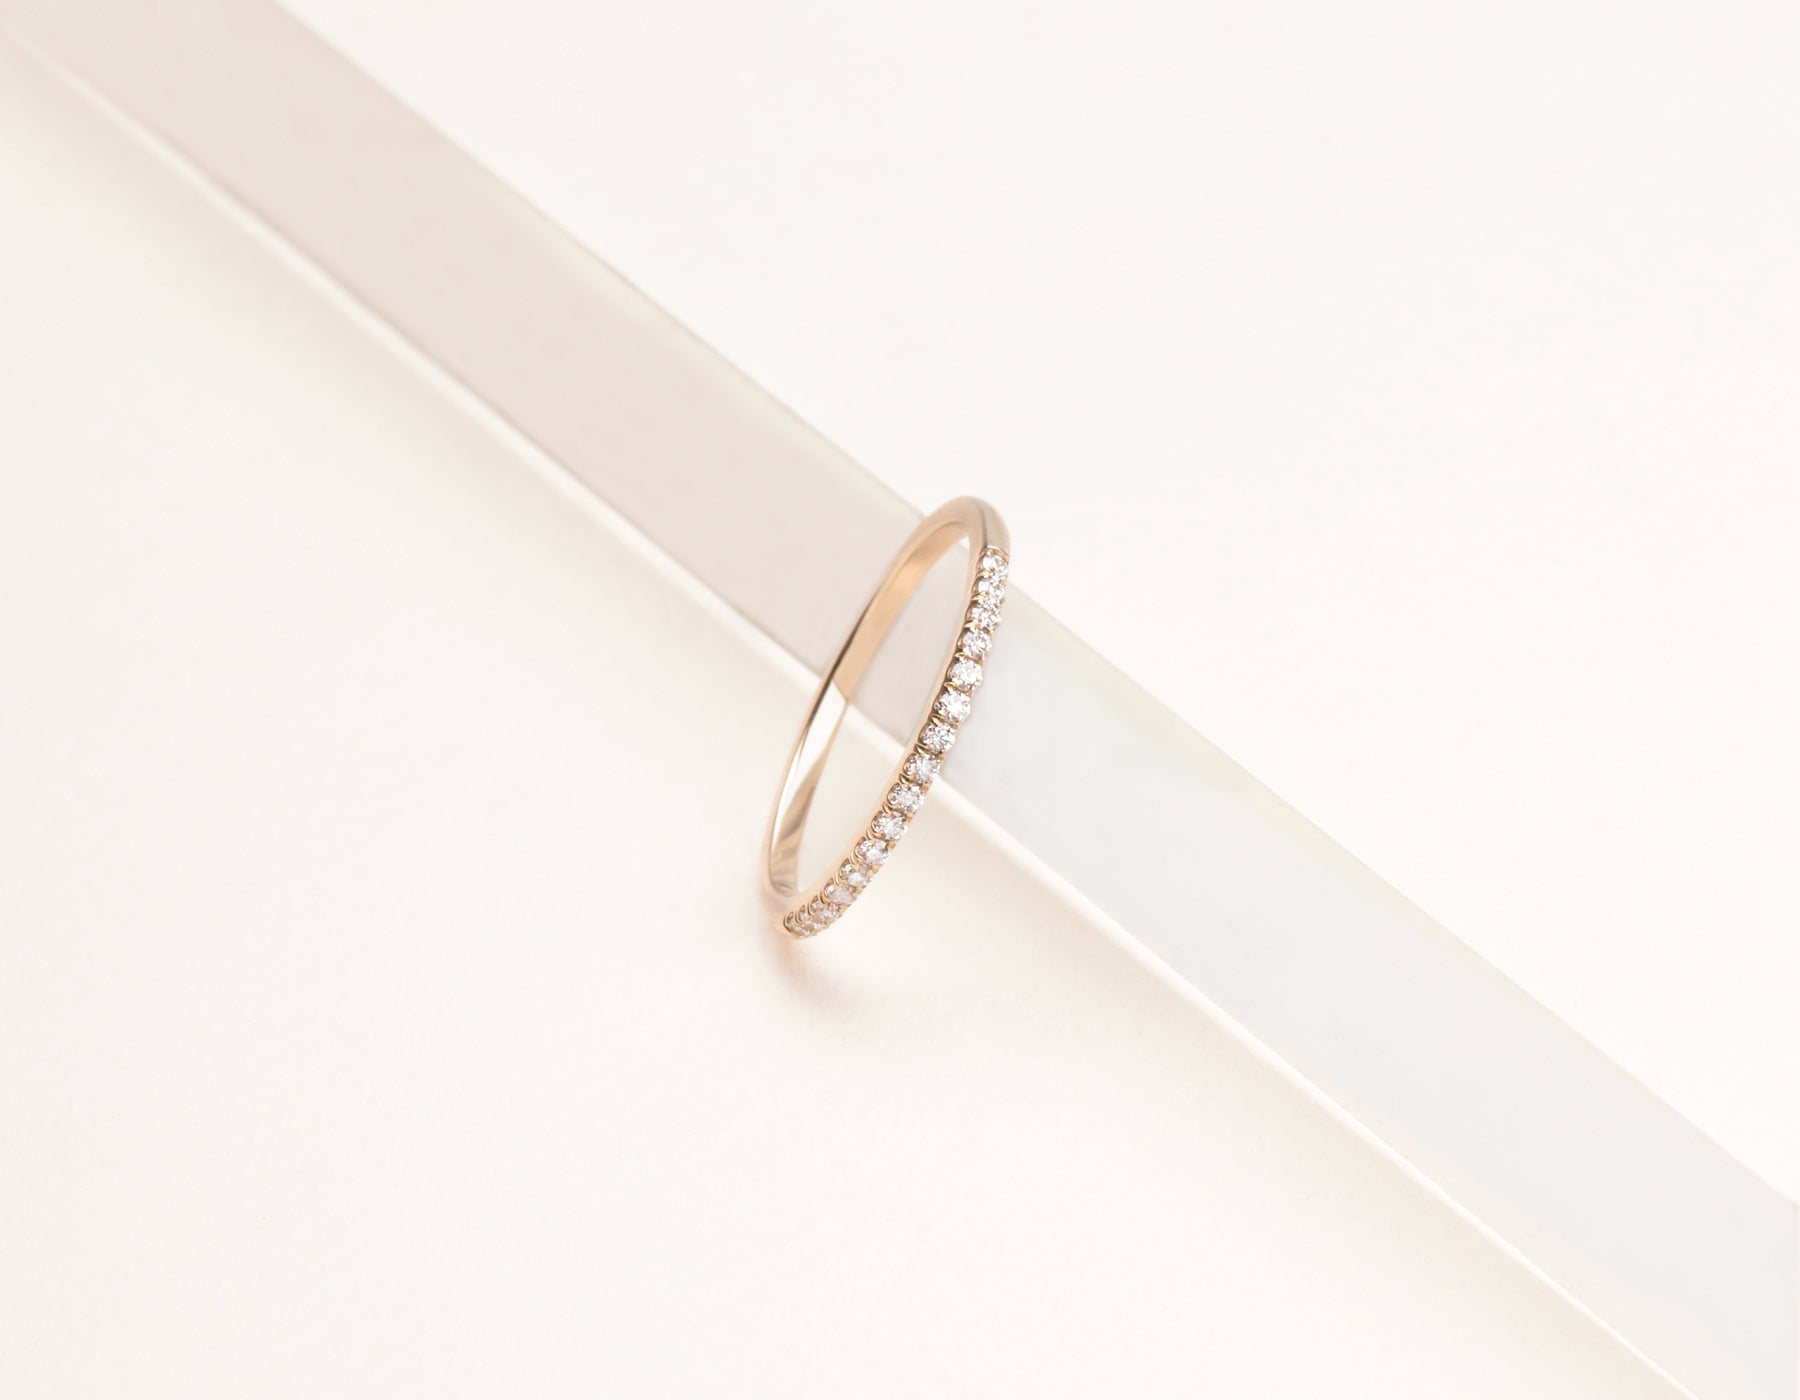 wedding modern engagement available rose solitaire in vrai oro bands gold pin vow white ring simple and diamond yellow